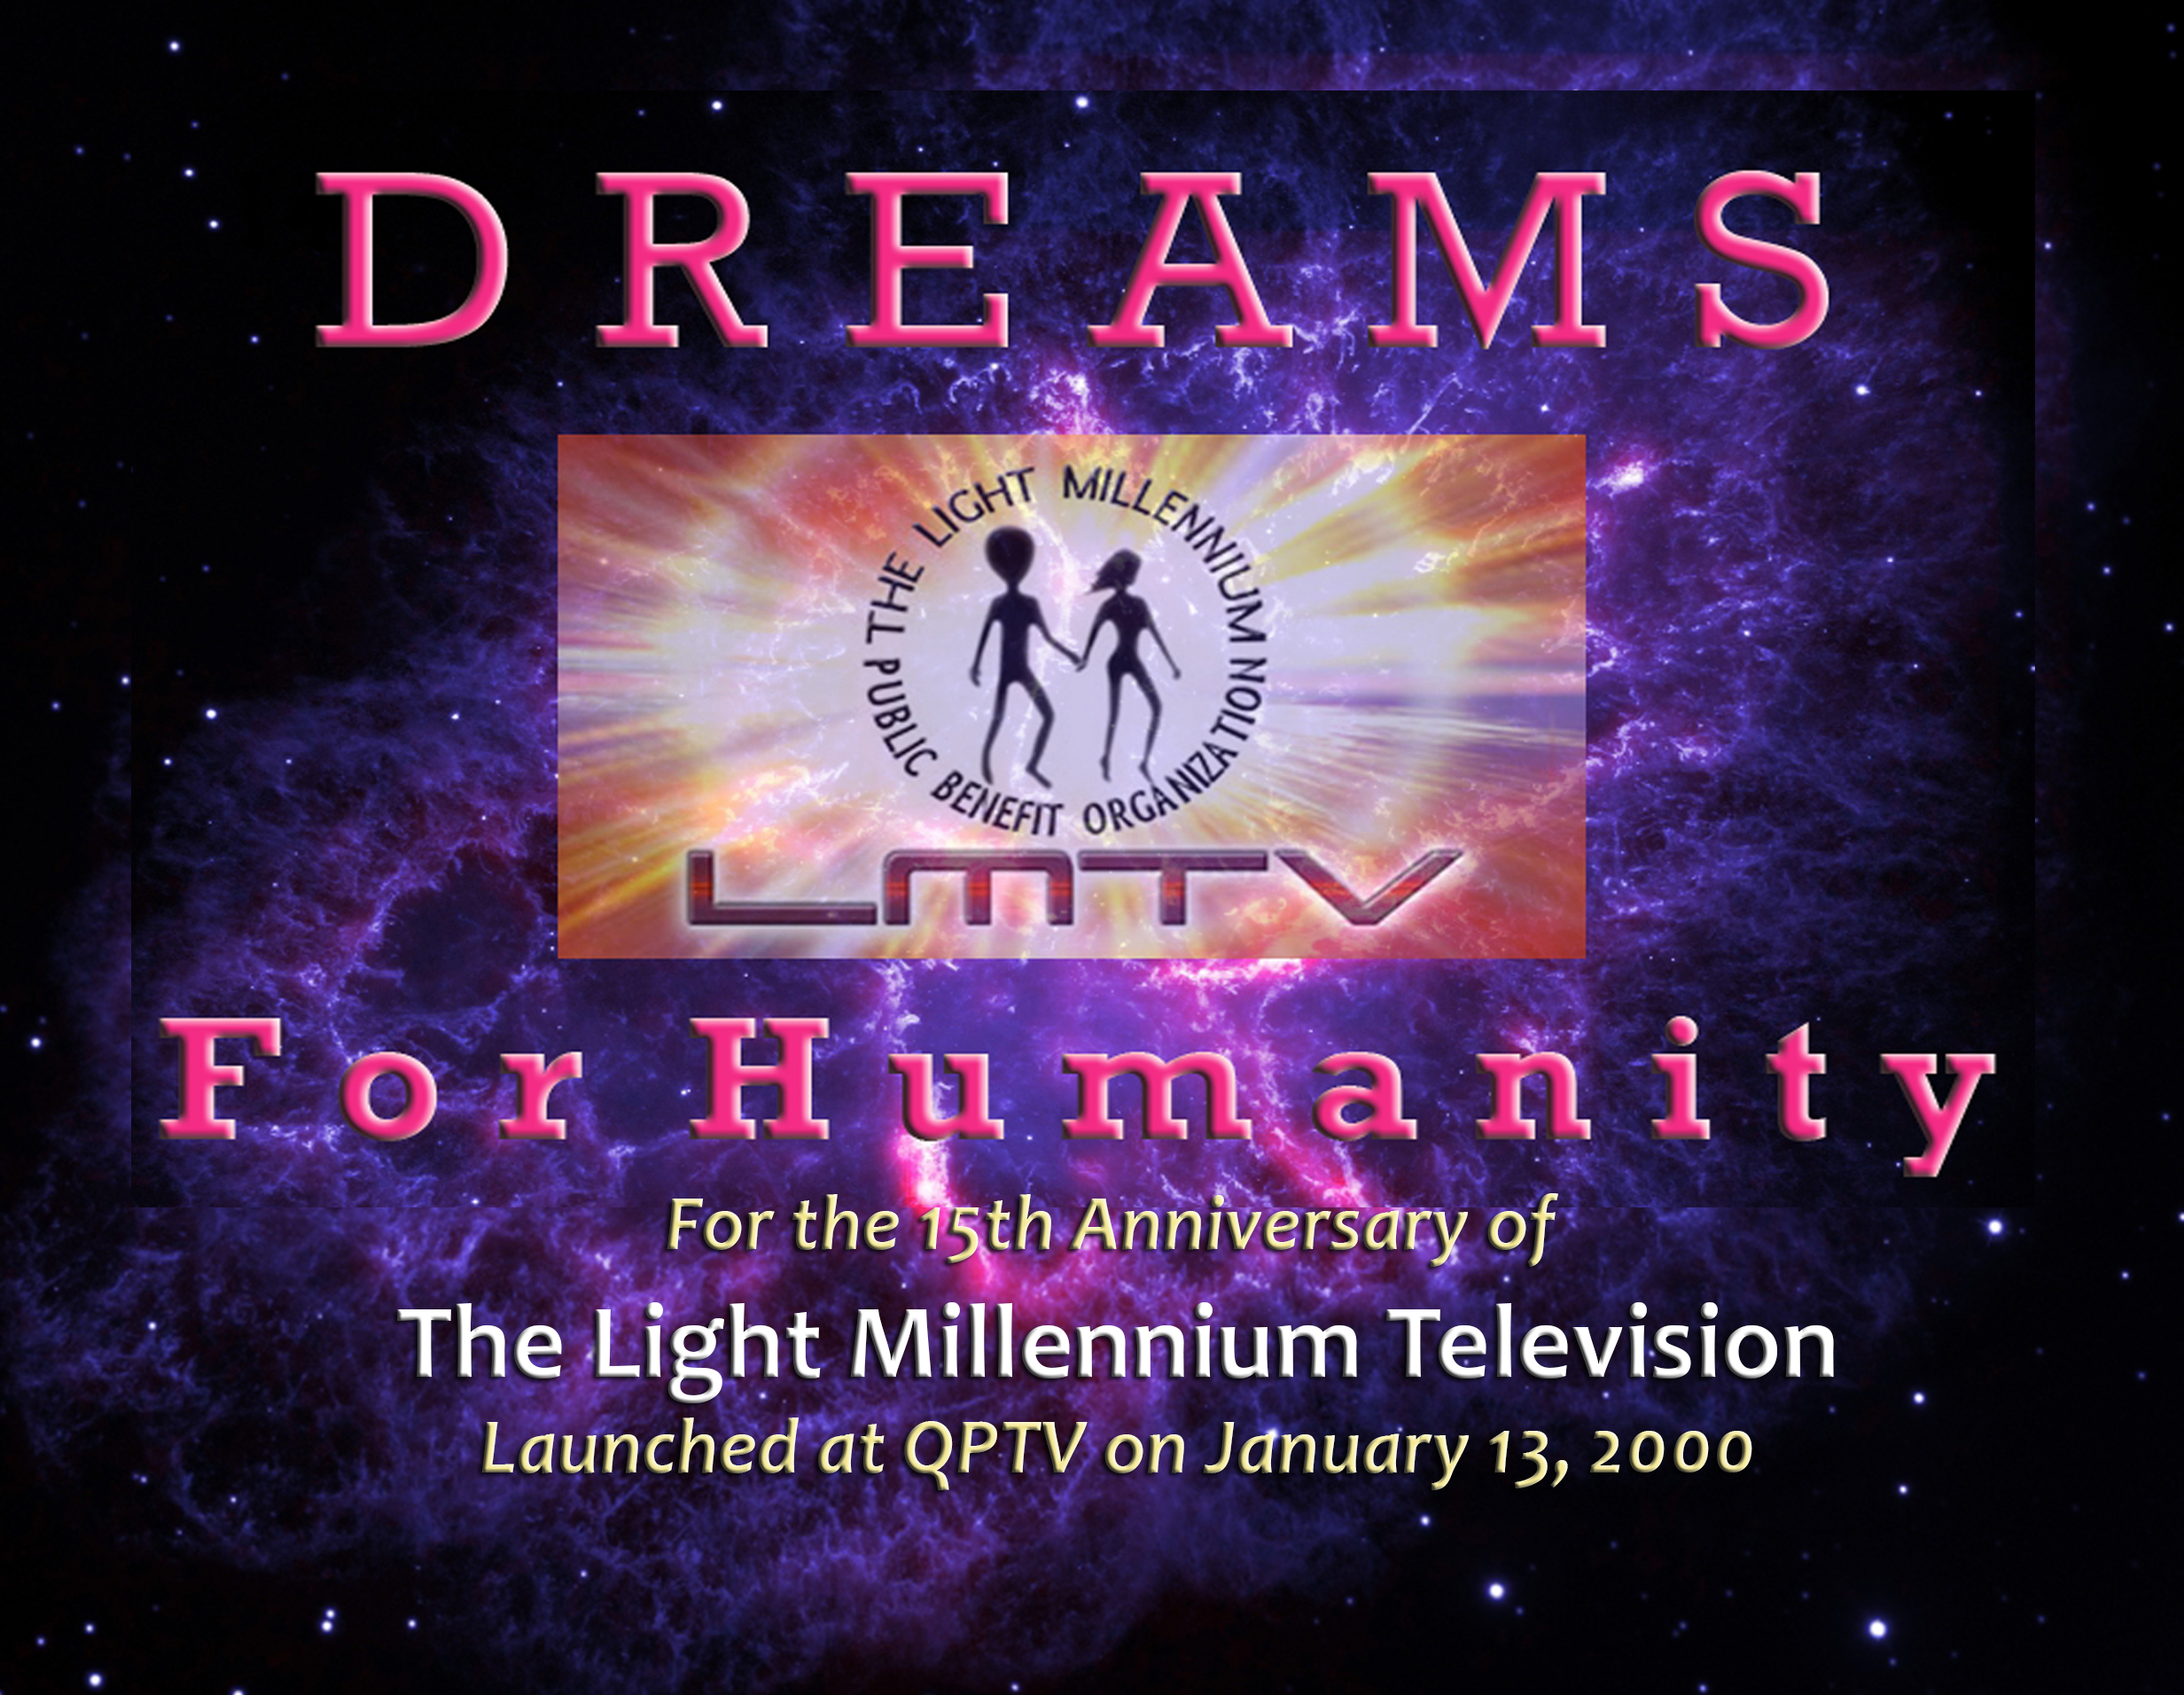 DREAMS FOR HUMANITY - Part 2/2 15th Anniversary of the Light Millennium TV - LMTV